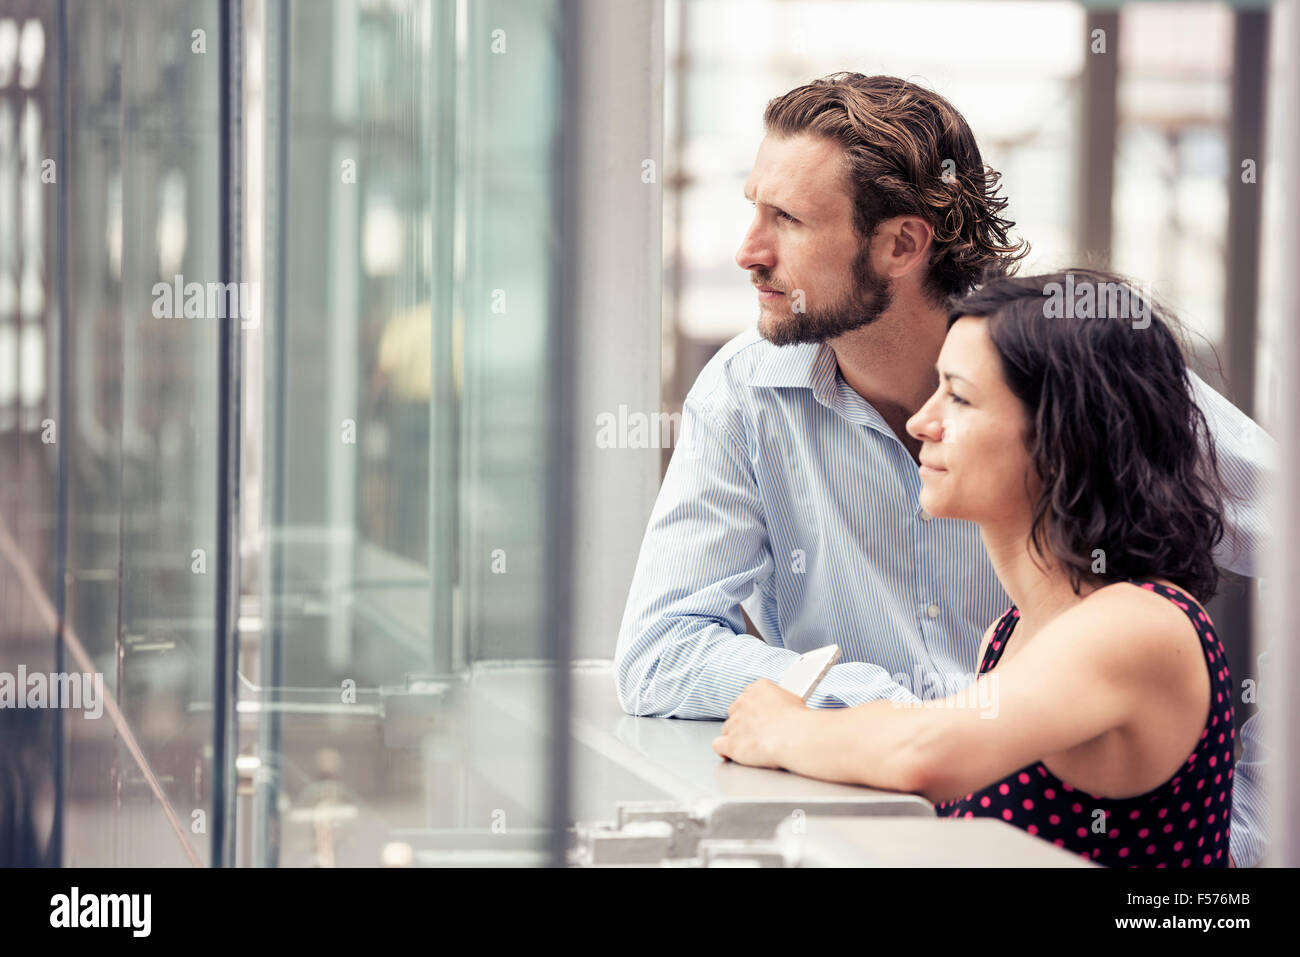 A couple outside a city building - Stock Image